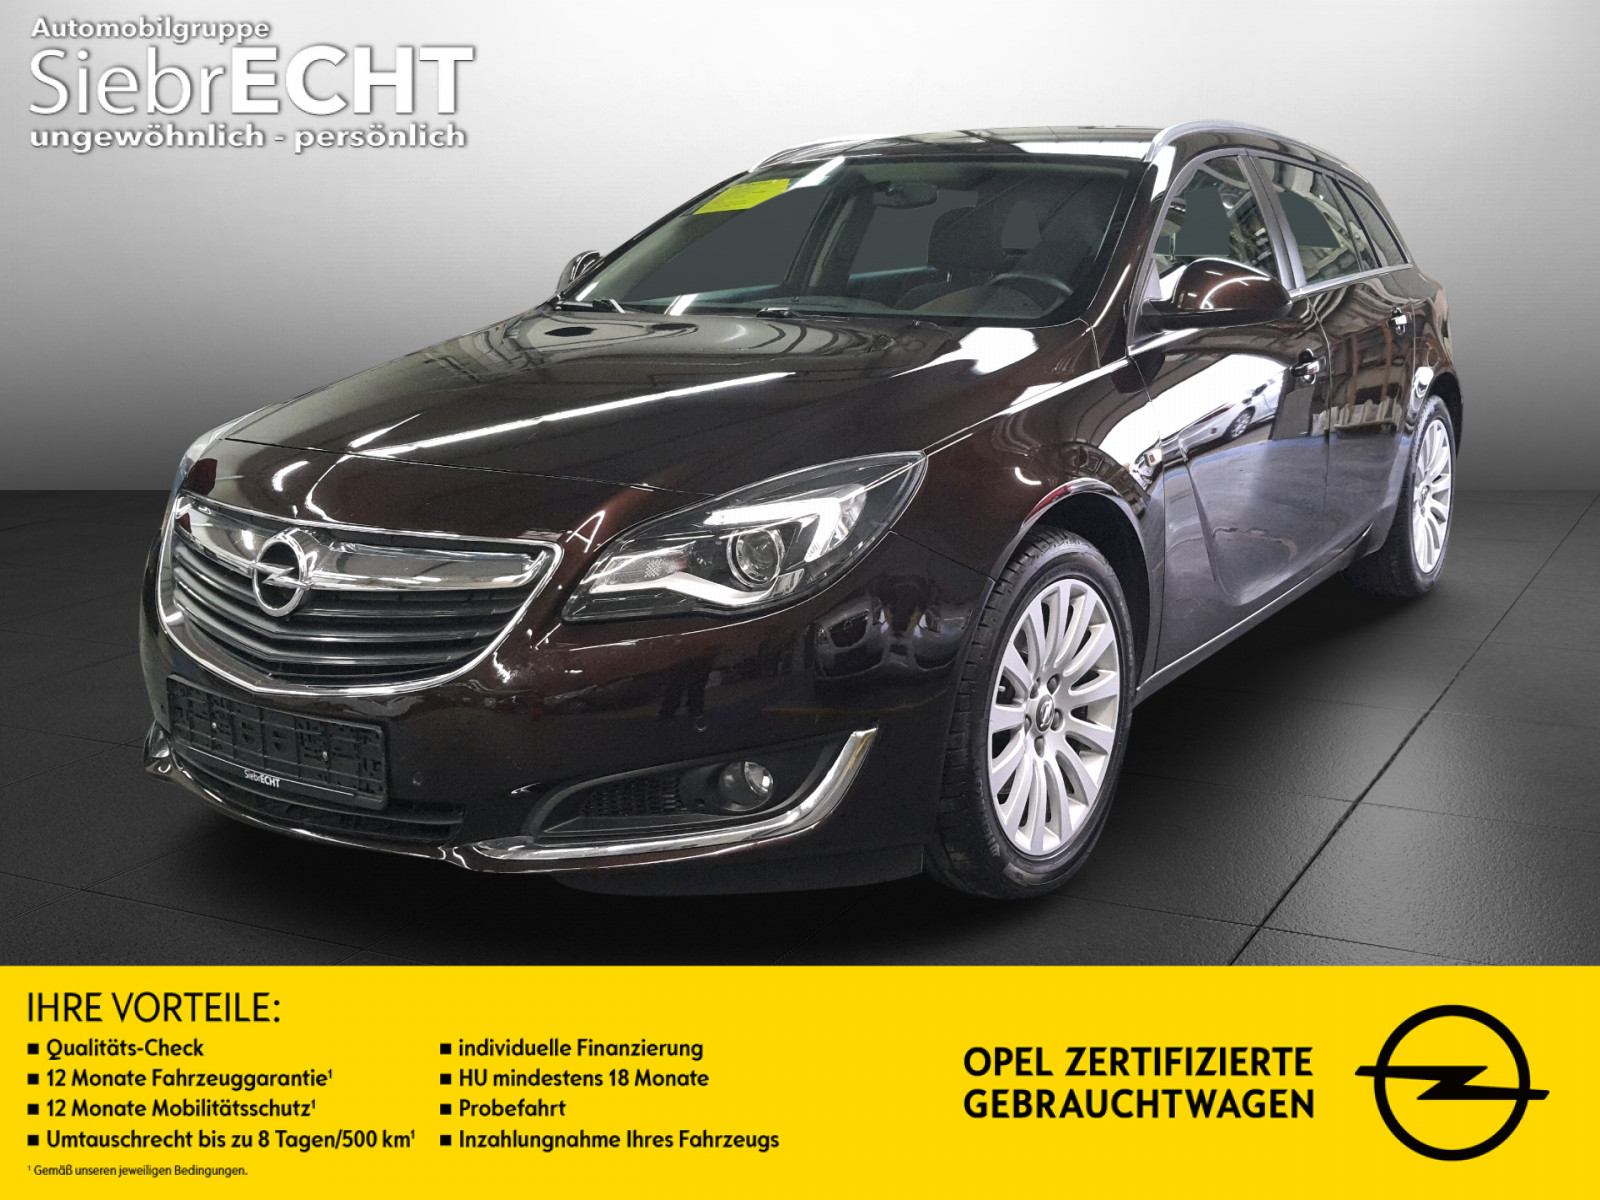 Opel Insignia A Edtition ST 2.0 CDTI AT*AHK*PDC*, Jahr 2015, Diesel